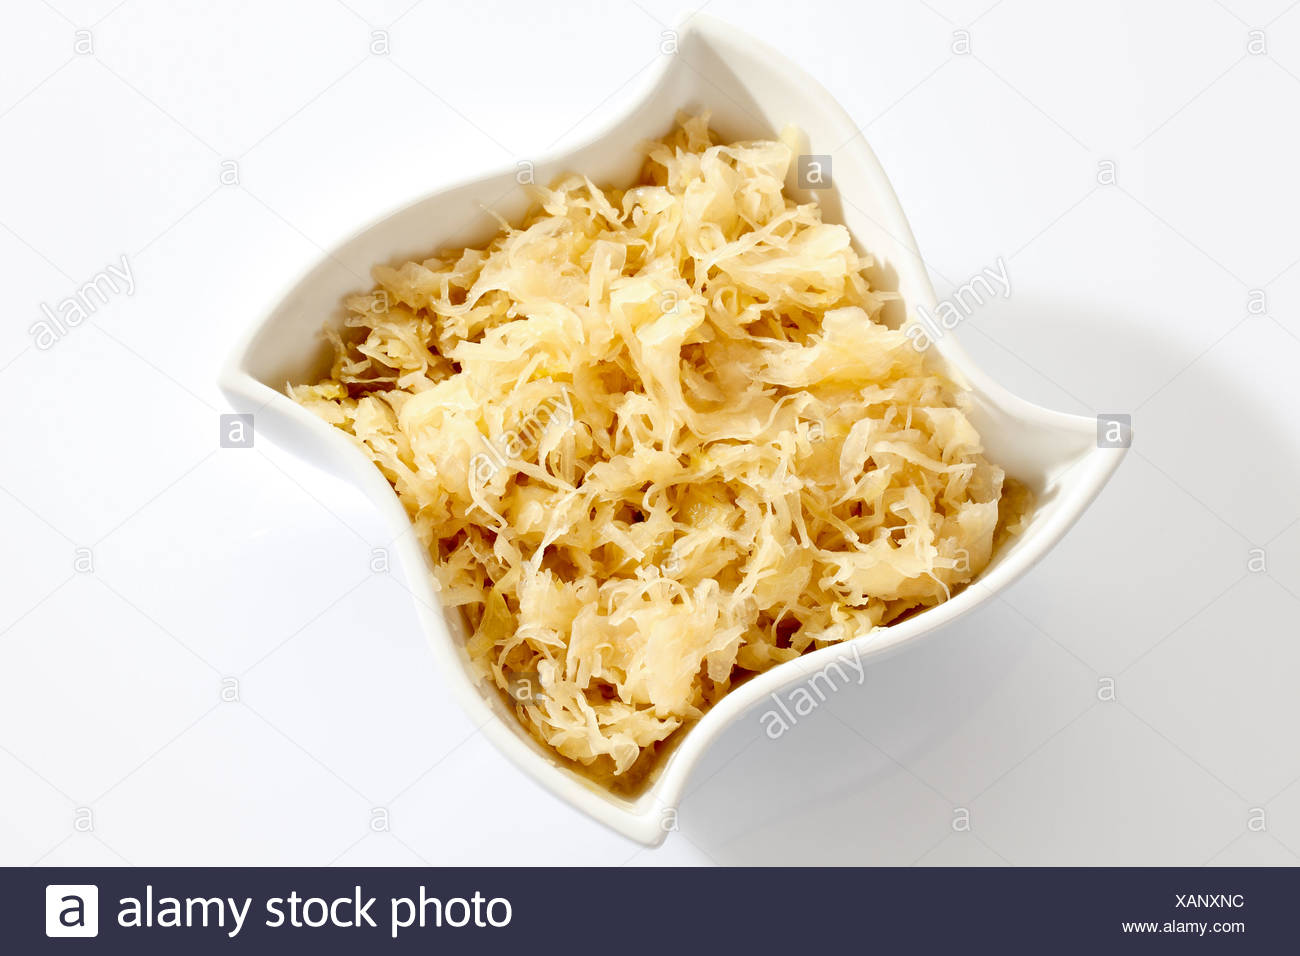 Sauerkraut from a can in a white porcelain bowl Stock Photo